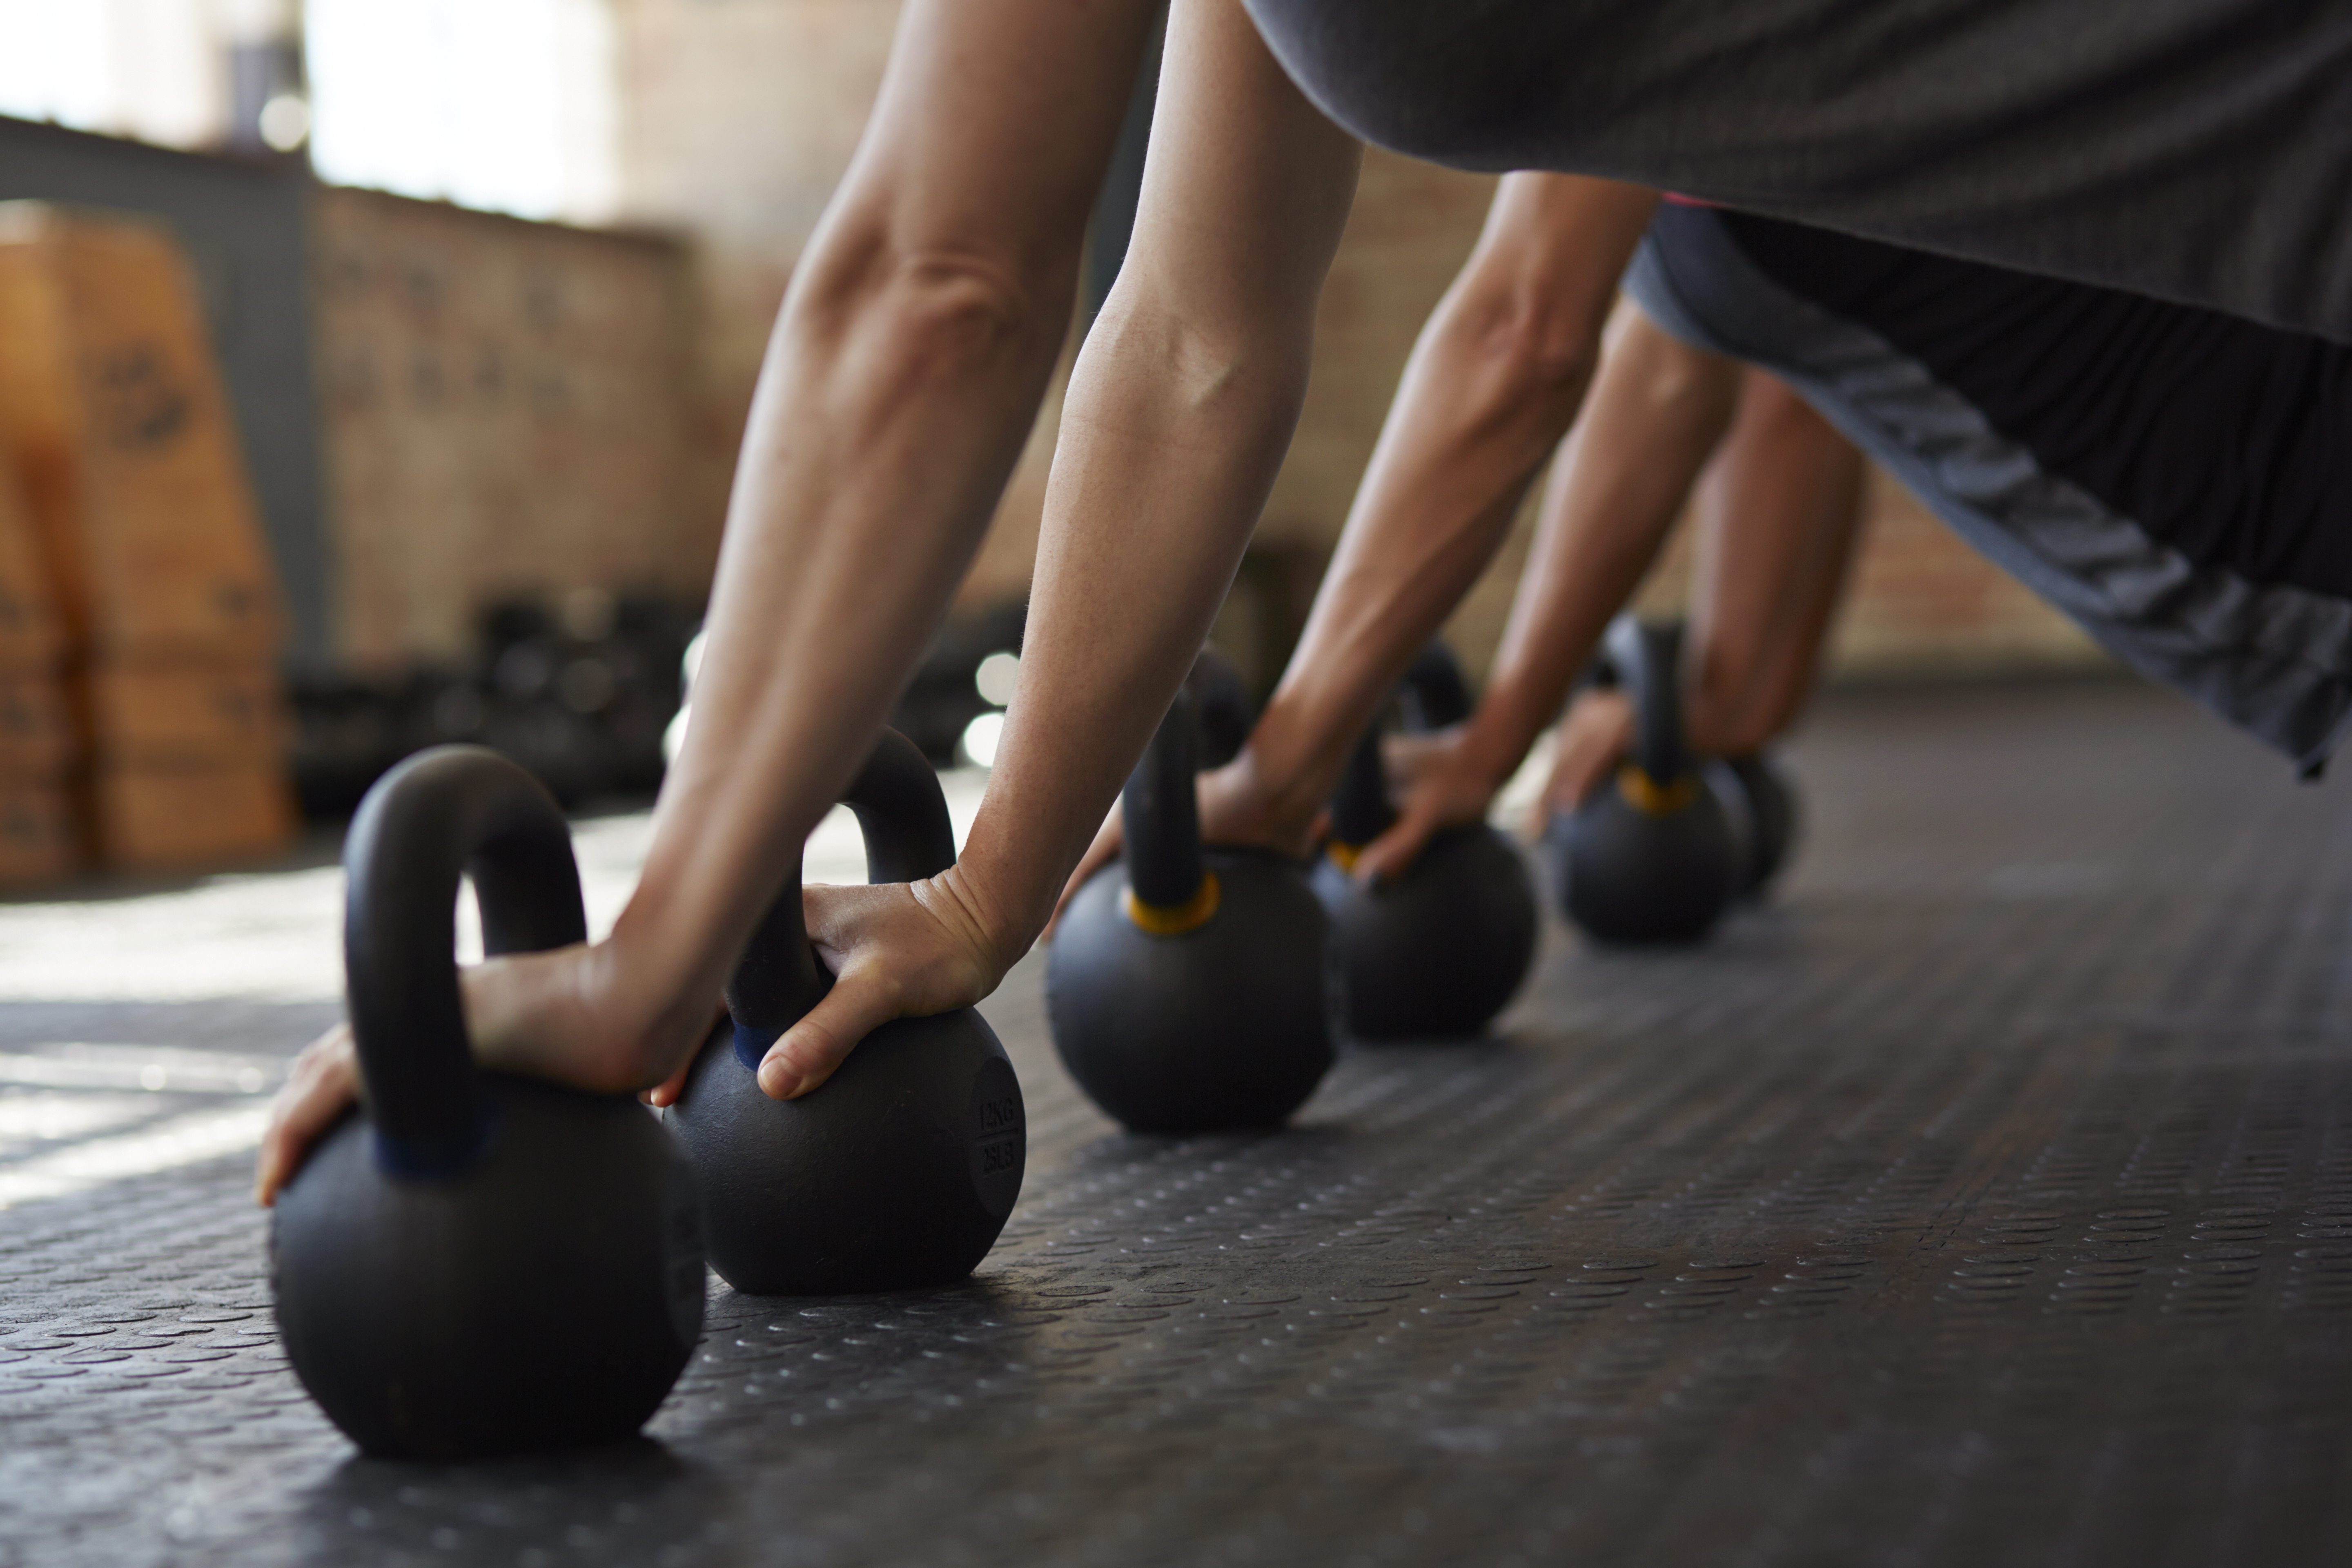 5 At-Home Workouts Provided By Local Businesses